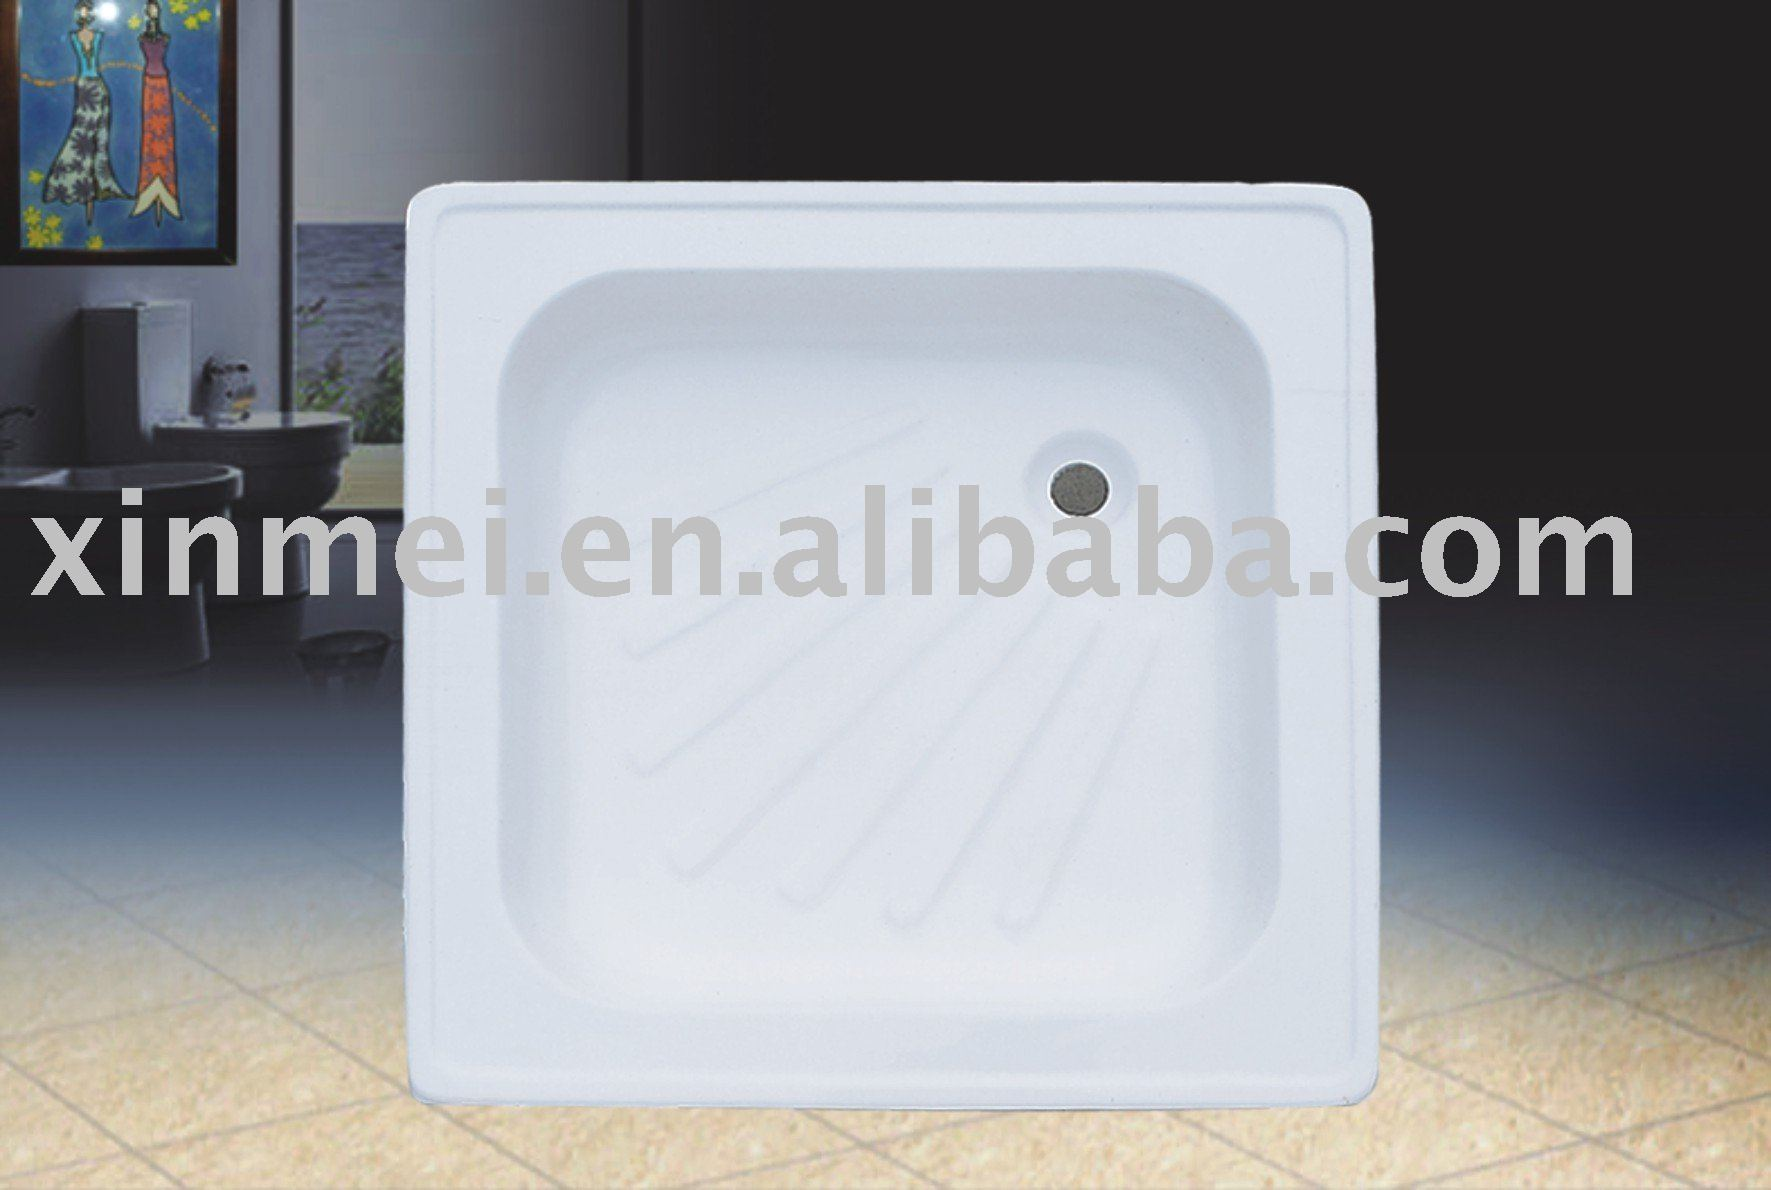 Shower Tray Tub,Shower Tub,Washing Tub - Buy Shower Tray,Bathroom ...